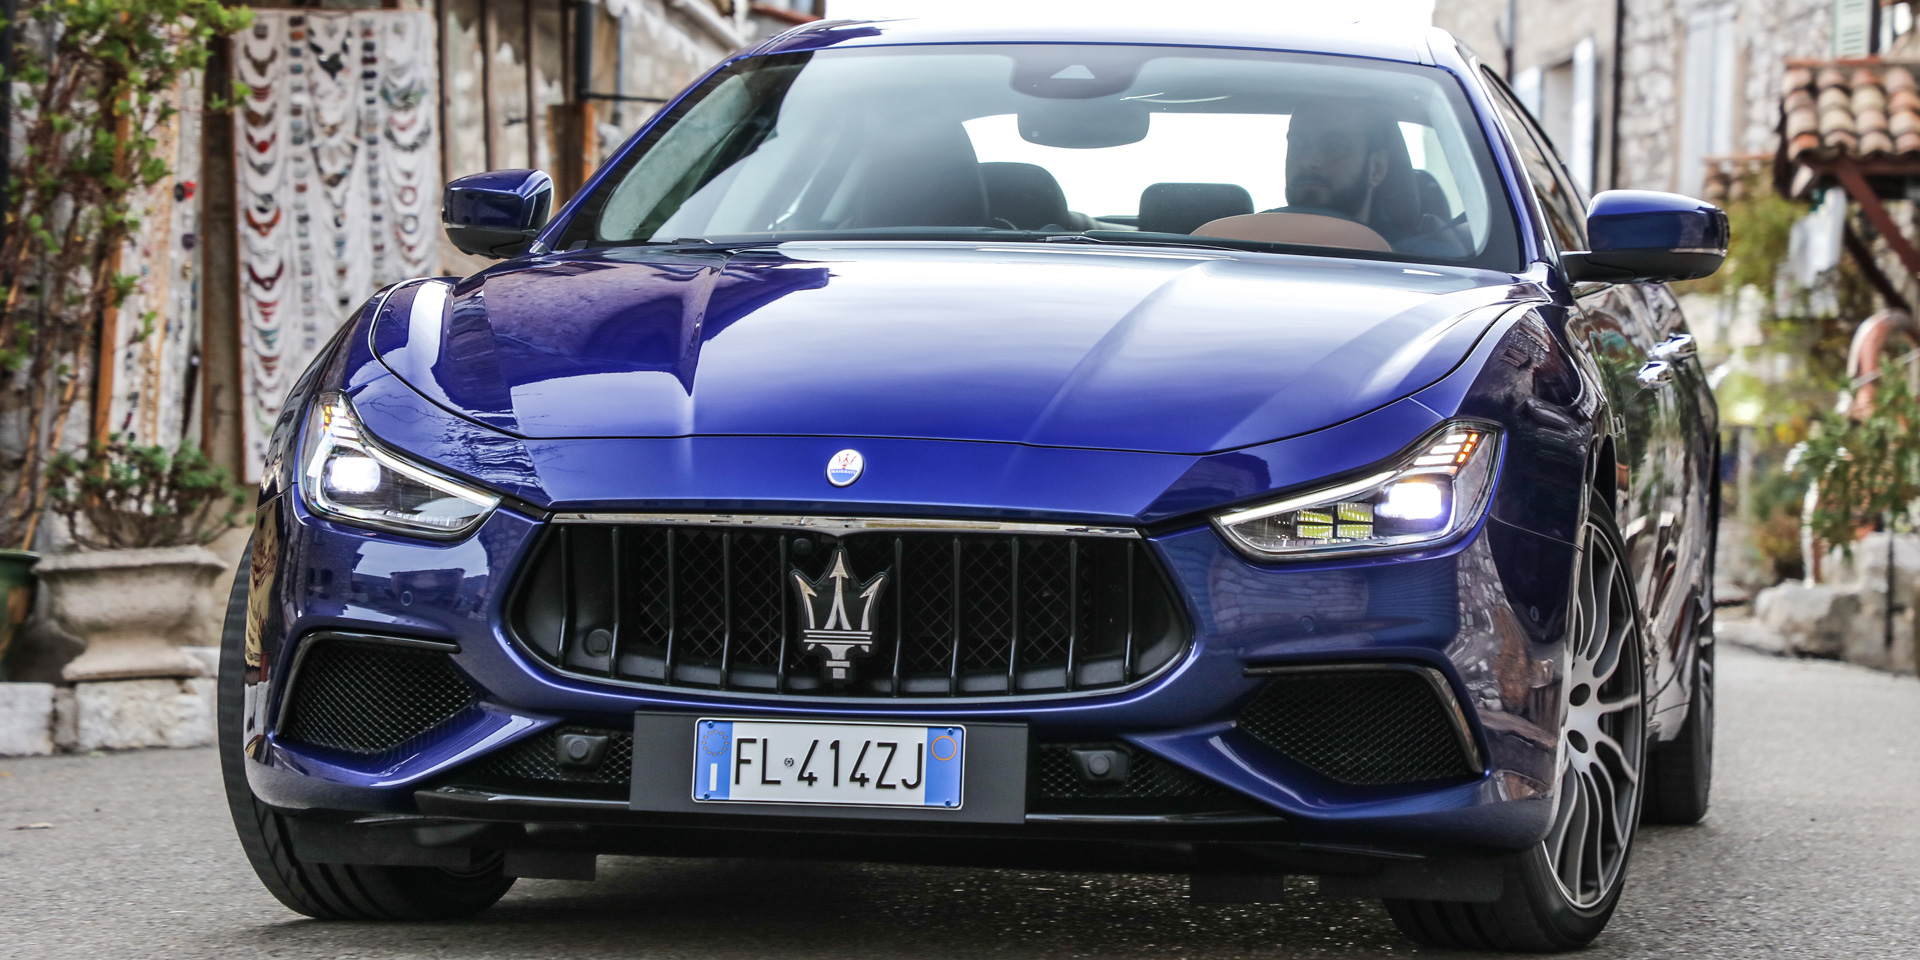 2018 maserati ghibli vehicles on display chicago auto show. Black Bedroom Furniture Sets. Home Design Ideas